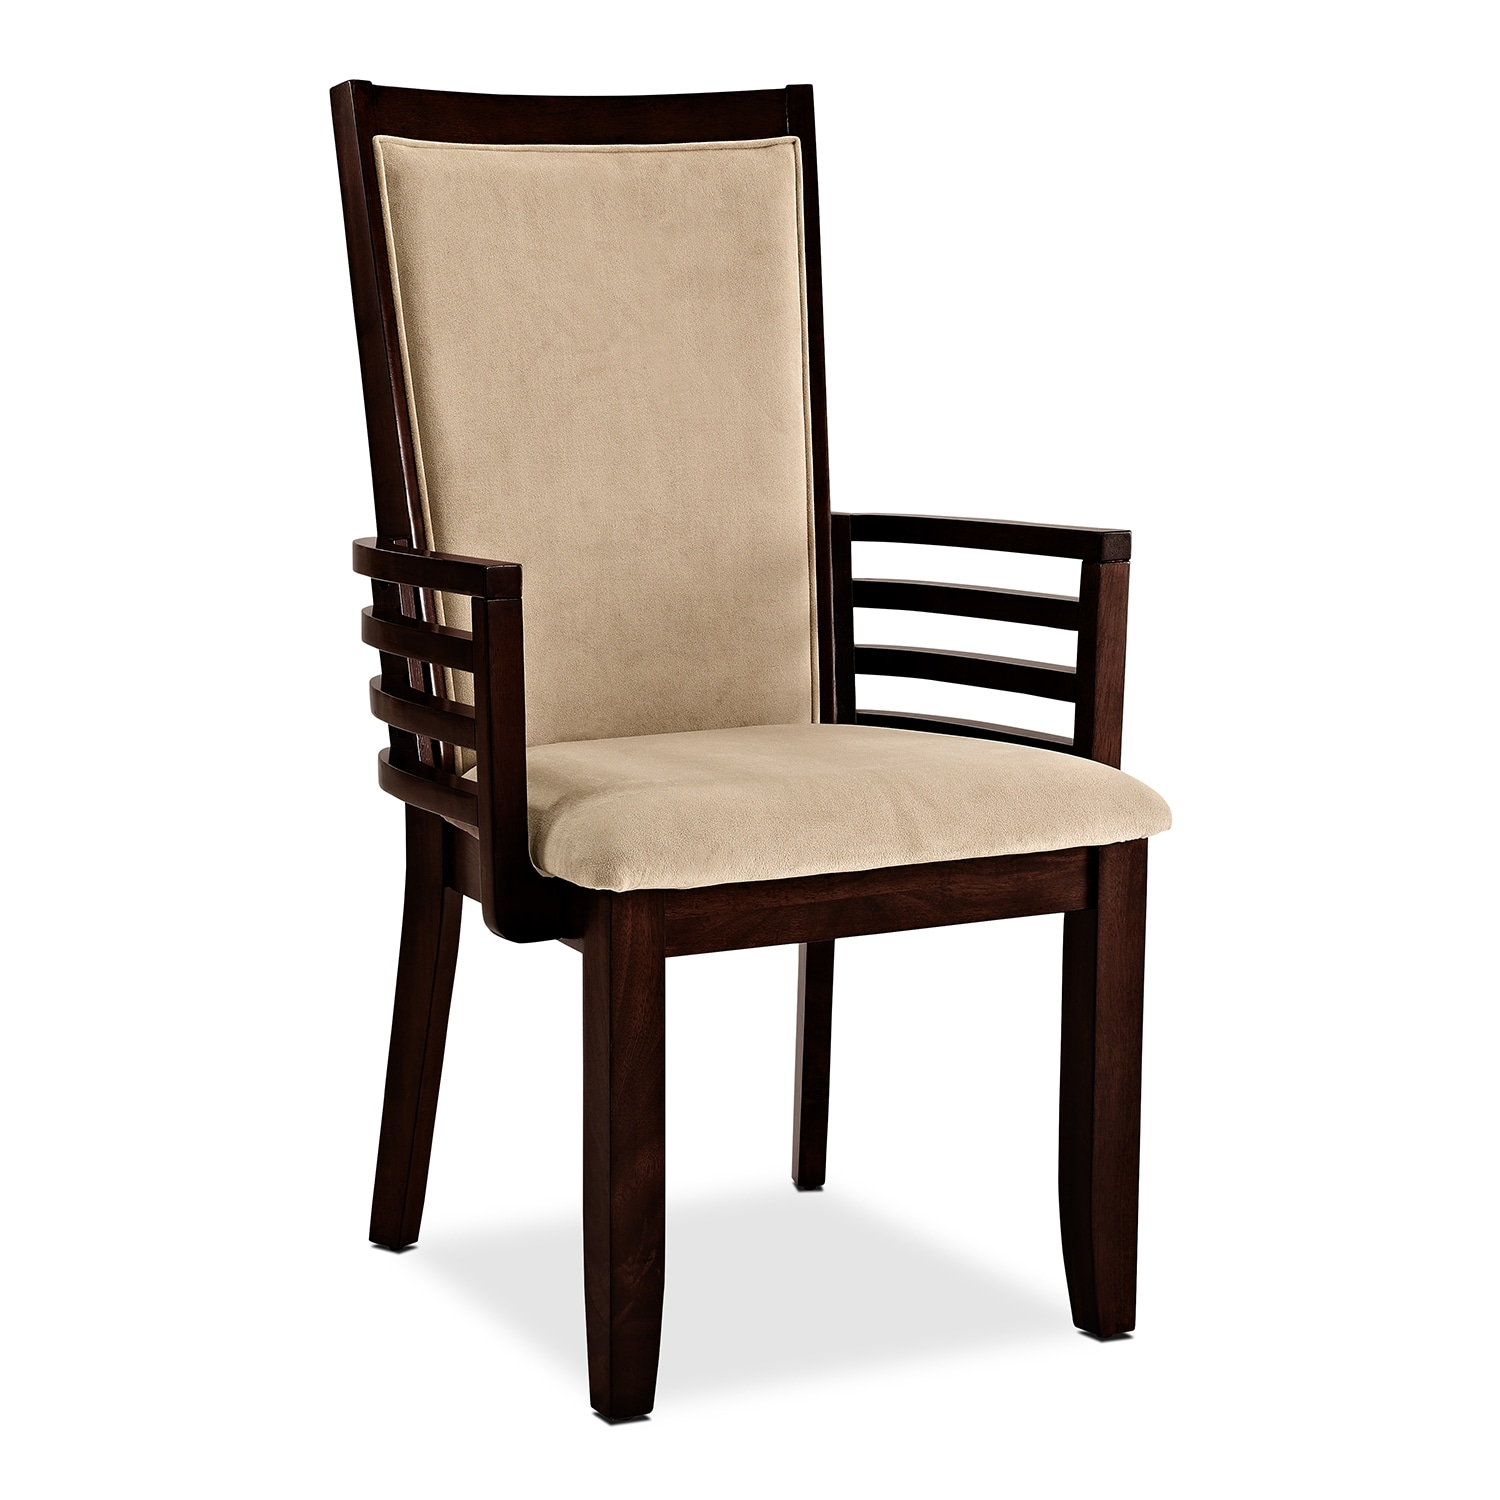 Furnishings for every room online and store furniture for Dining room arm chairs